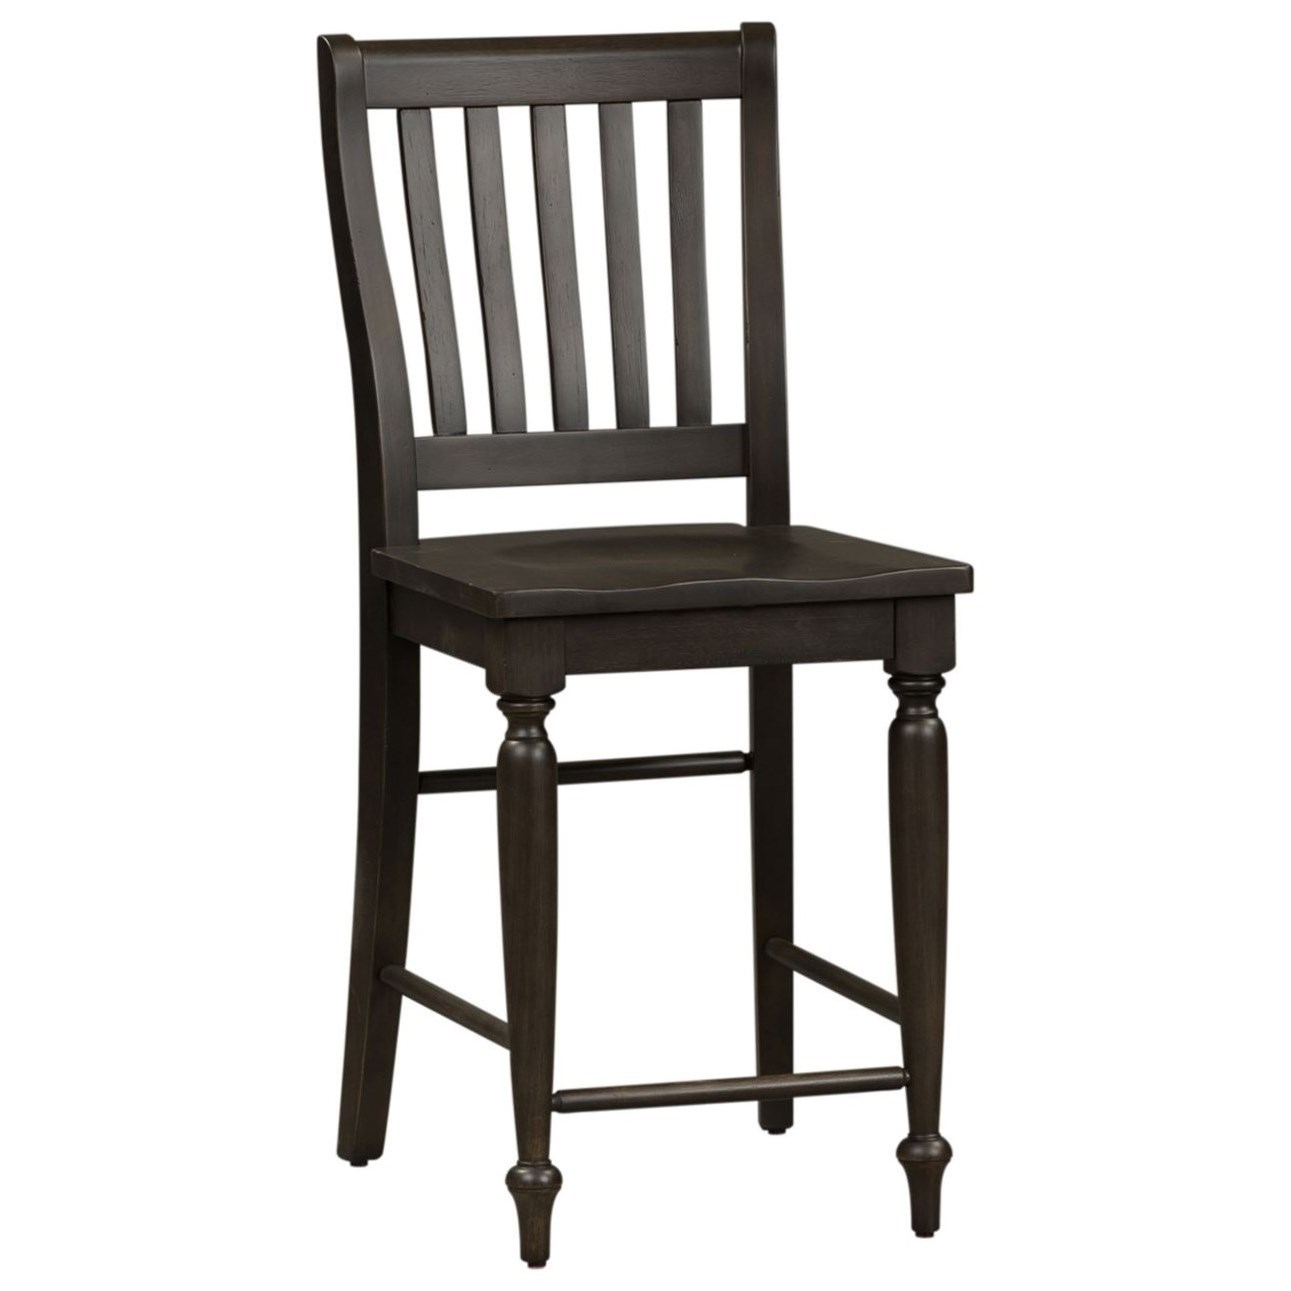 Harvest Home Slat Back Counter Chair by Libby at Walker's Furniture